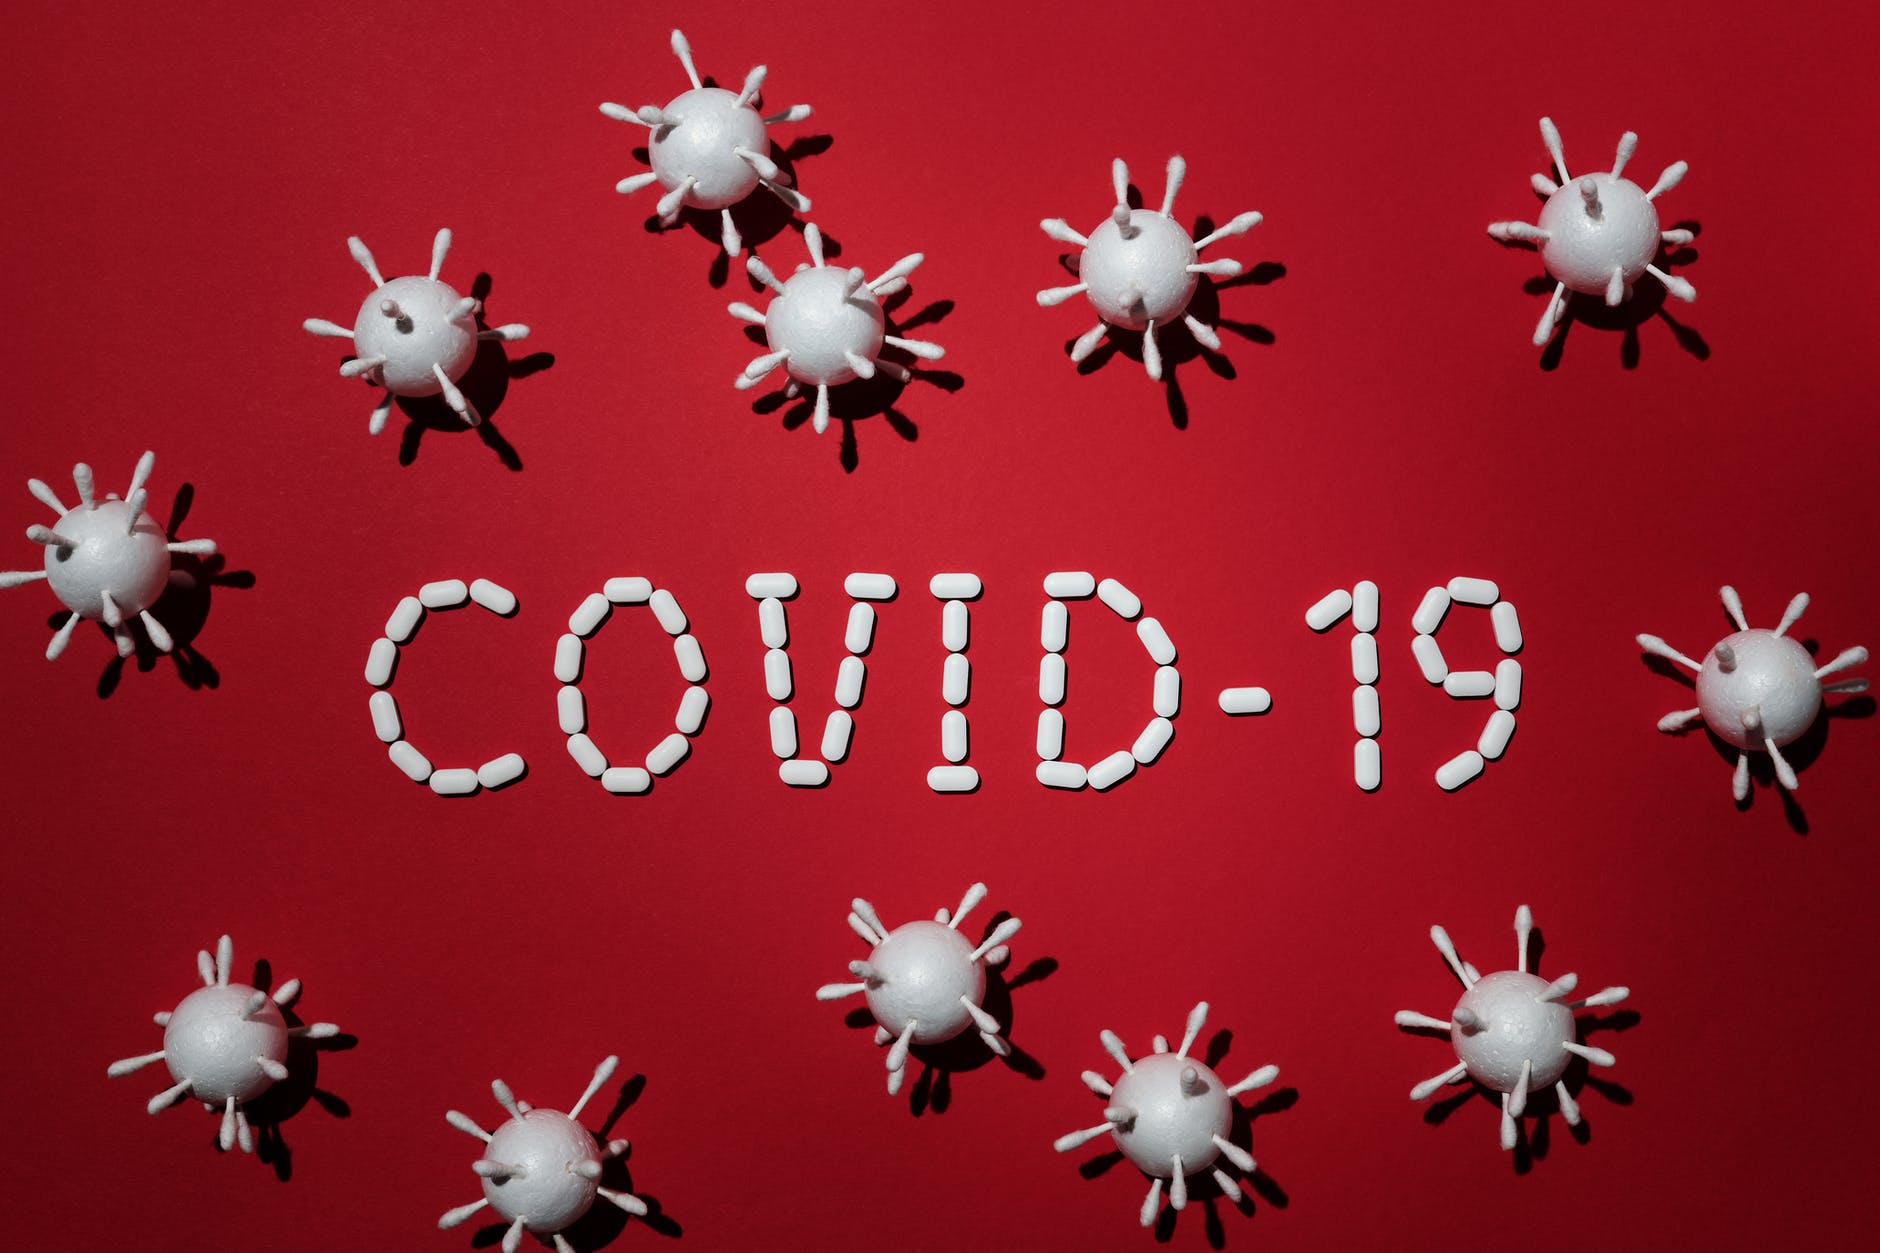 UX Design & COVID-19: How to reimagine UX for a post-pandemic world?